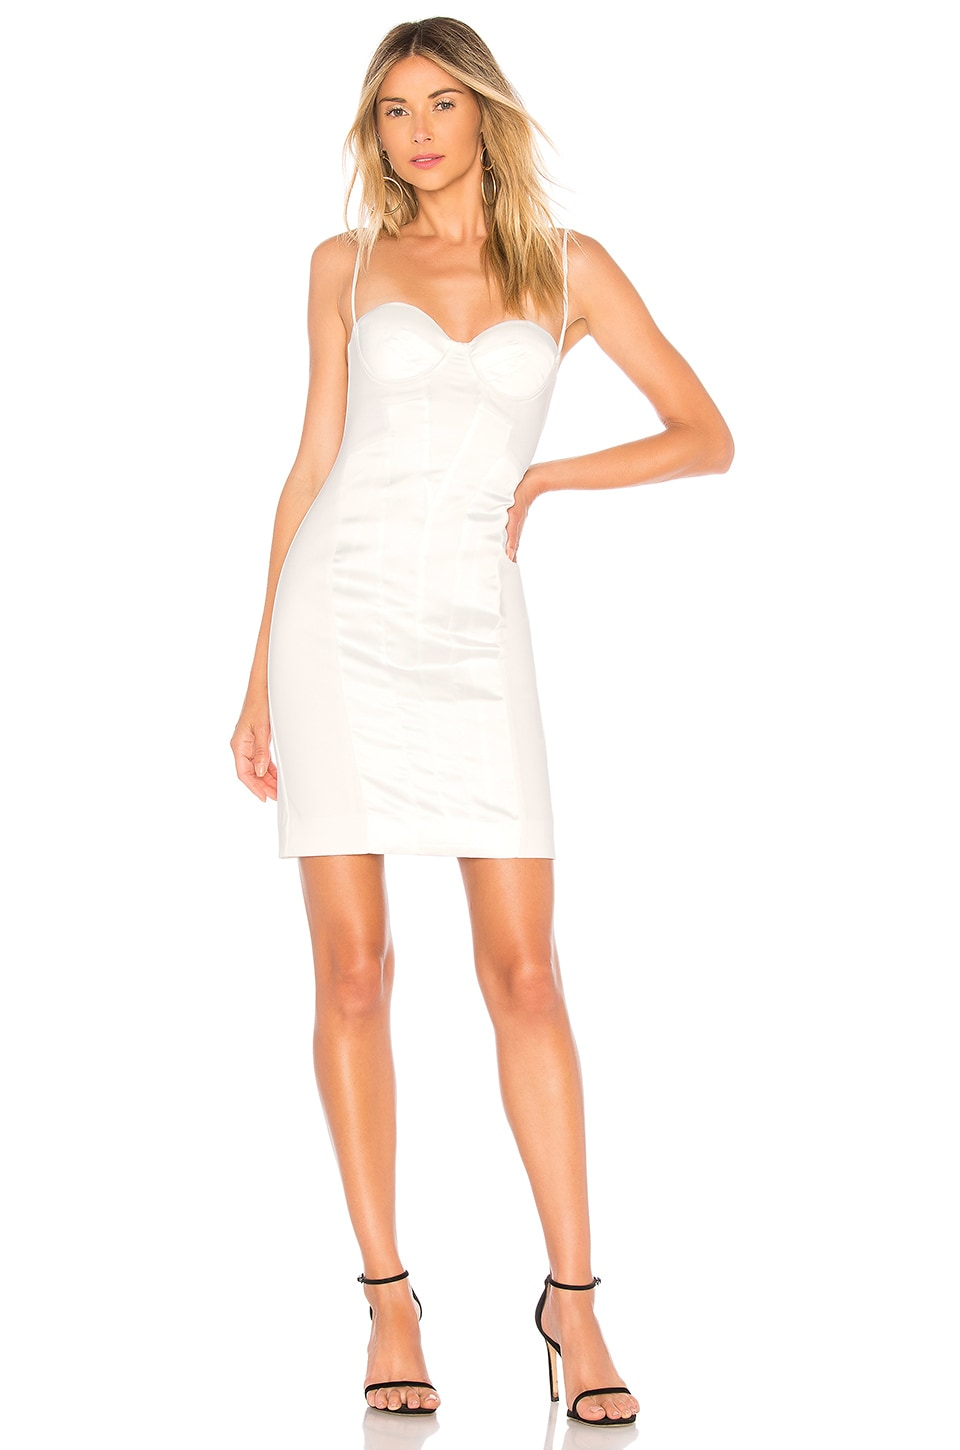 Chrissy Teigen x REVOLVE Bala Midi Dress in Ivory